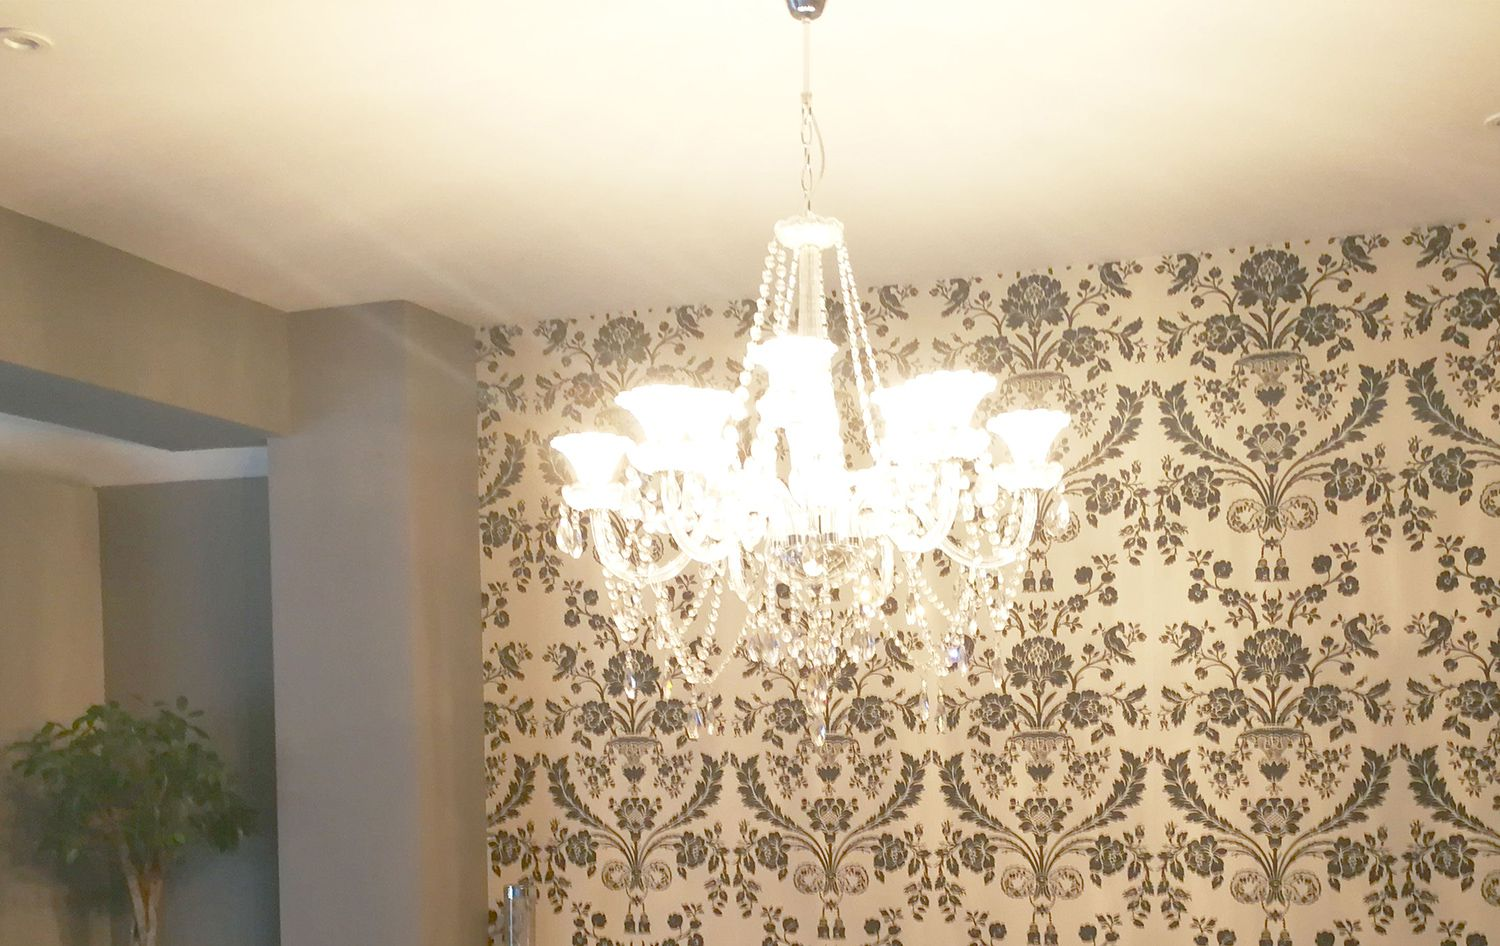 Before, there was one large glass beaded chandelier which wasn't in proportion to the space or the dining table.